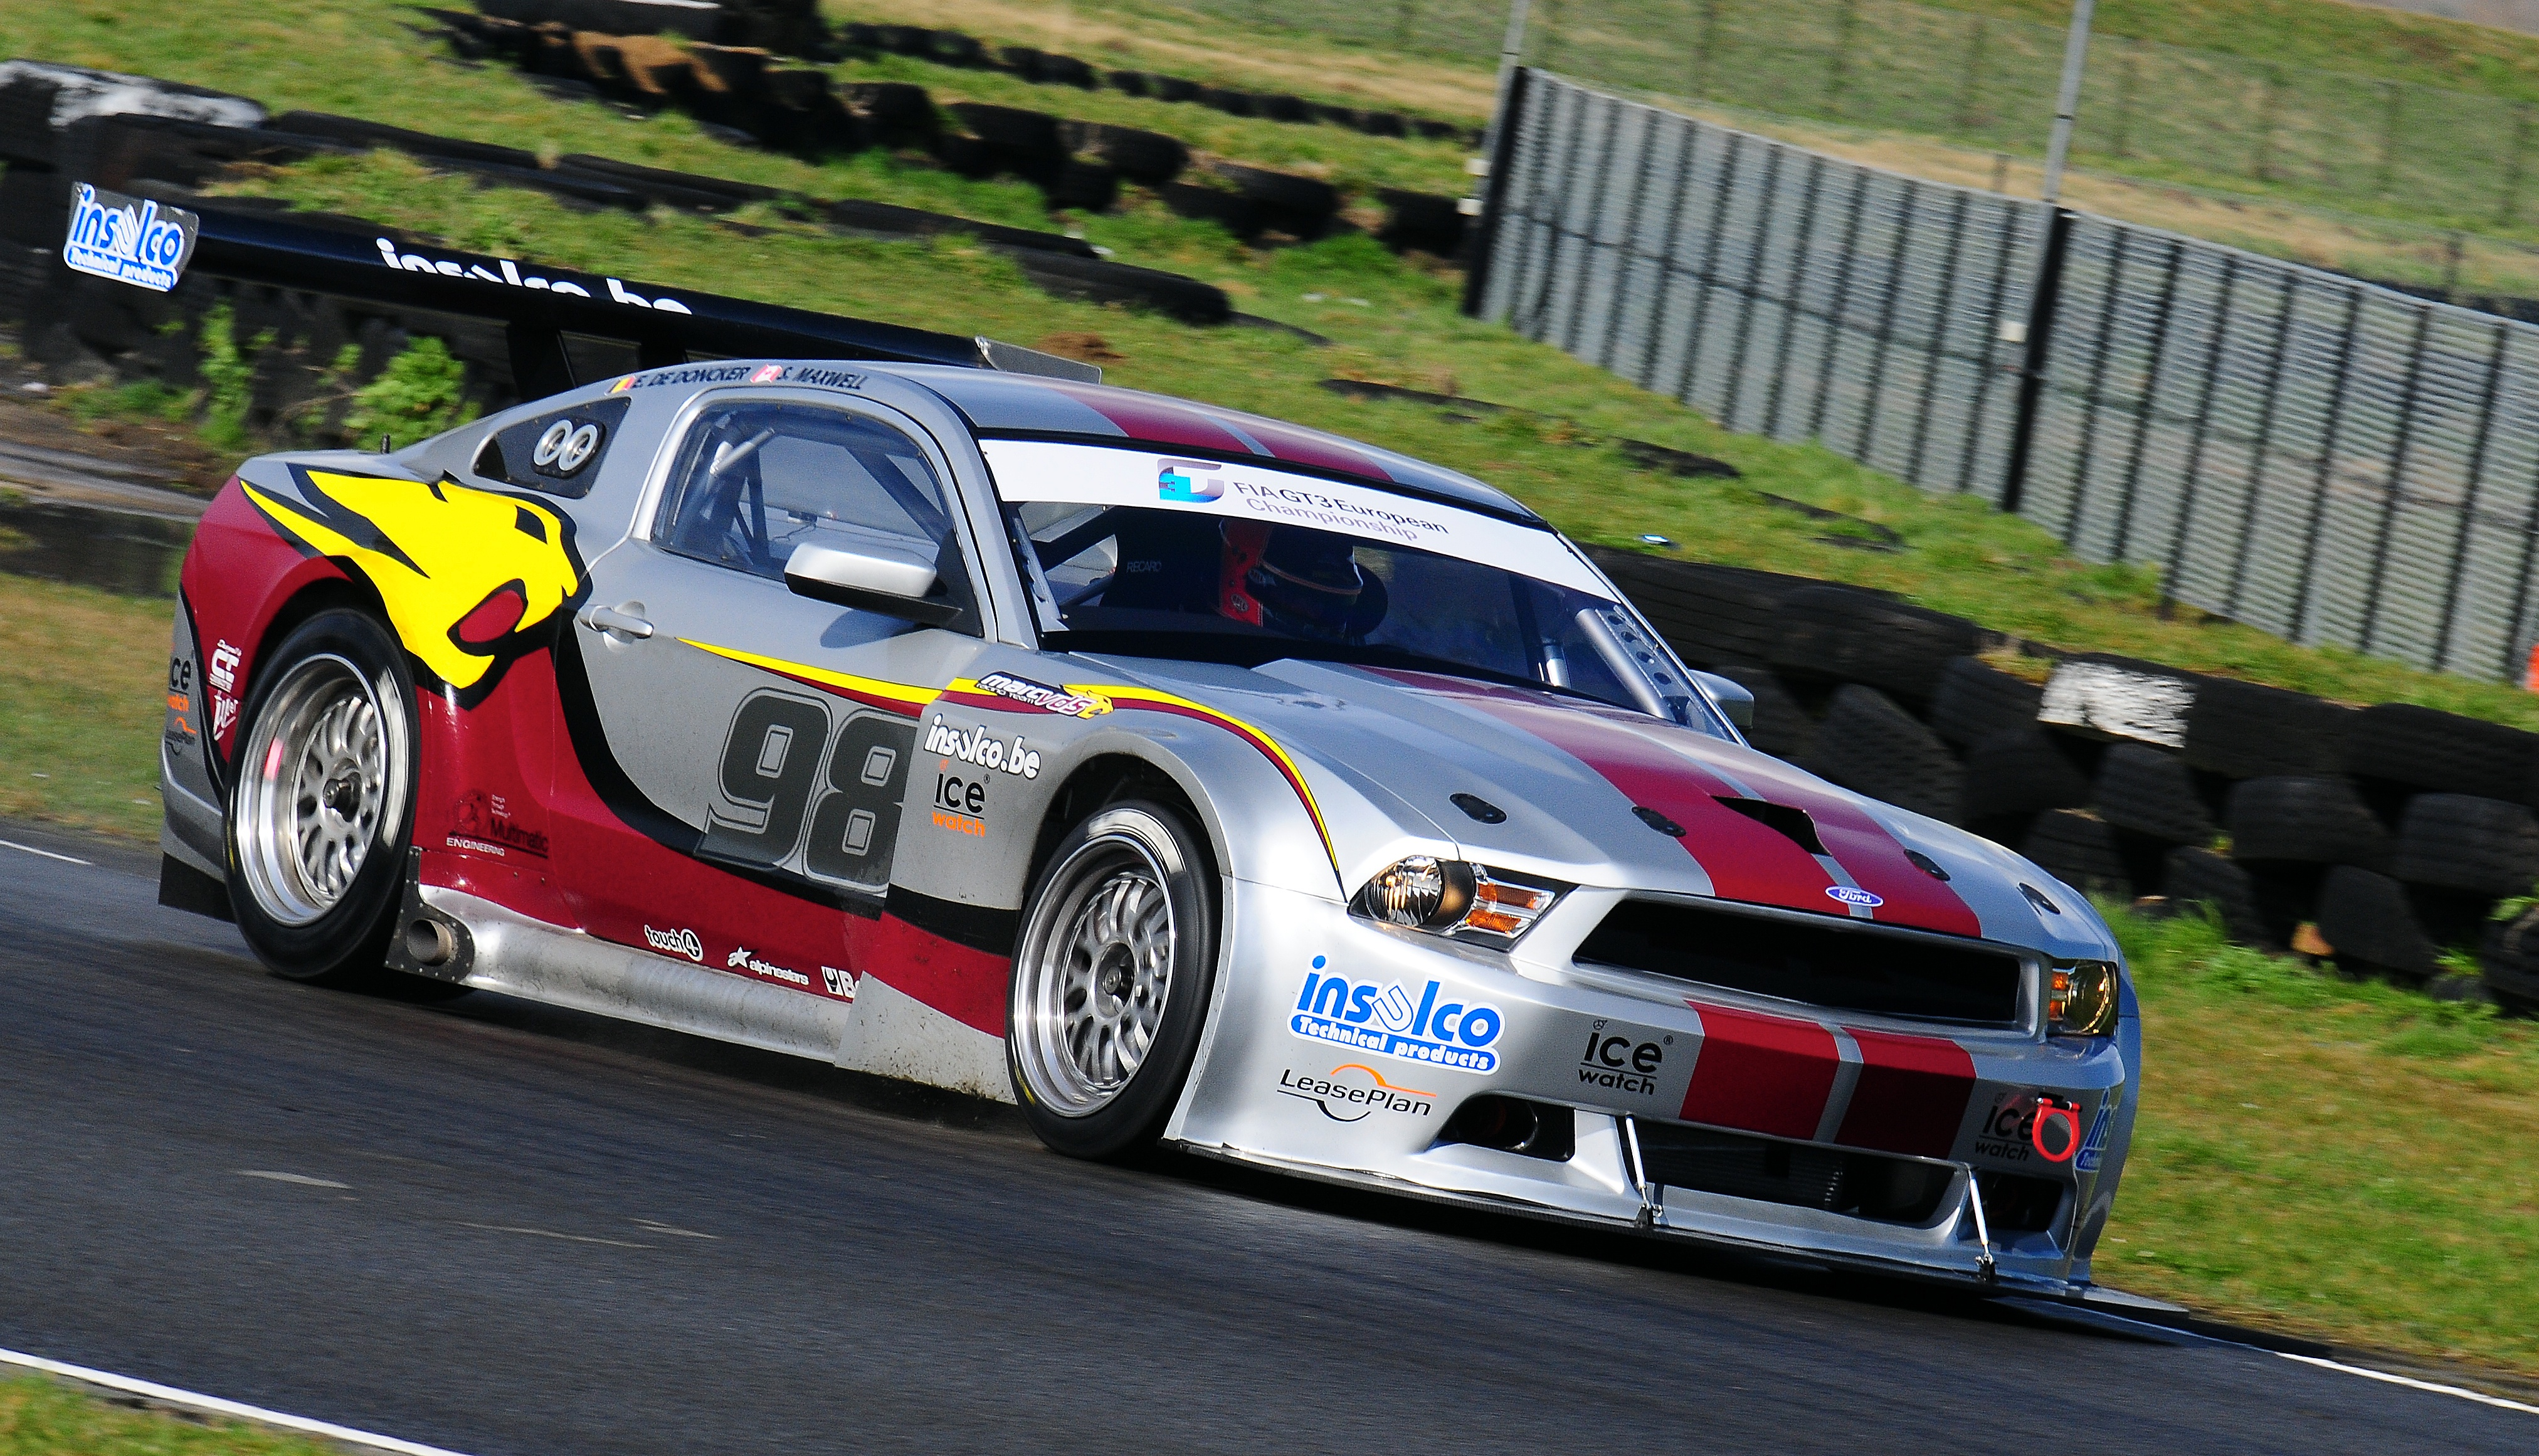 2011 Ford Mustang To Take On Gt3 European Championship